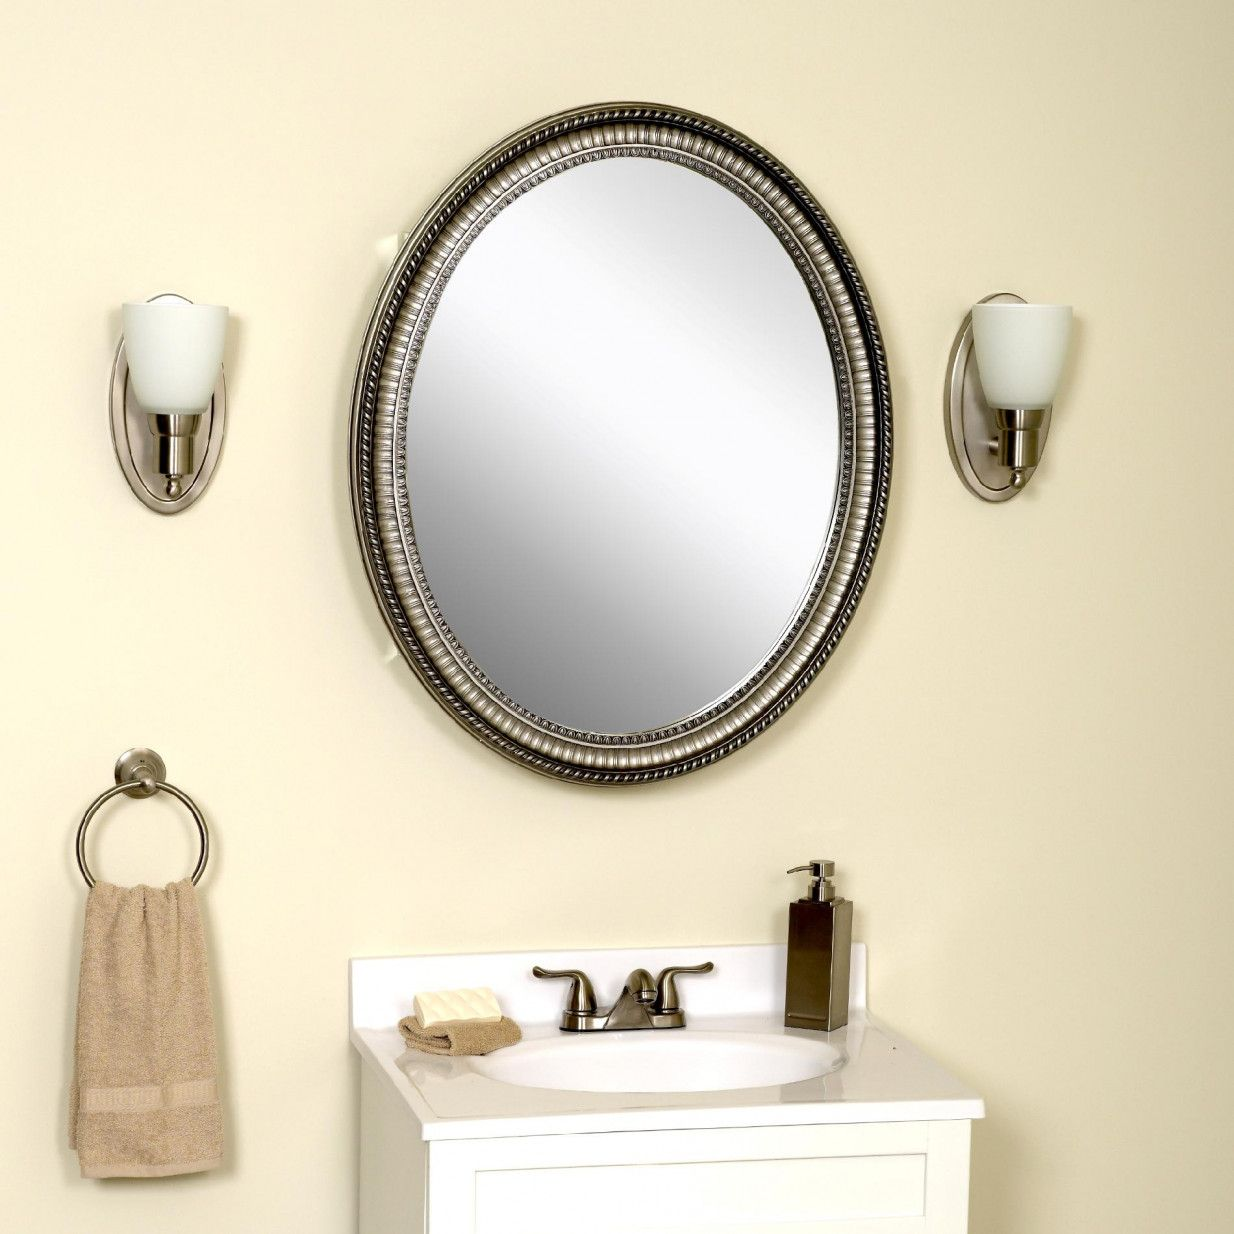 Mirrored Medicine Cabinet Lowes | liminality360.com